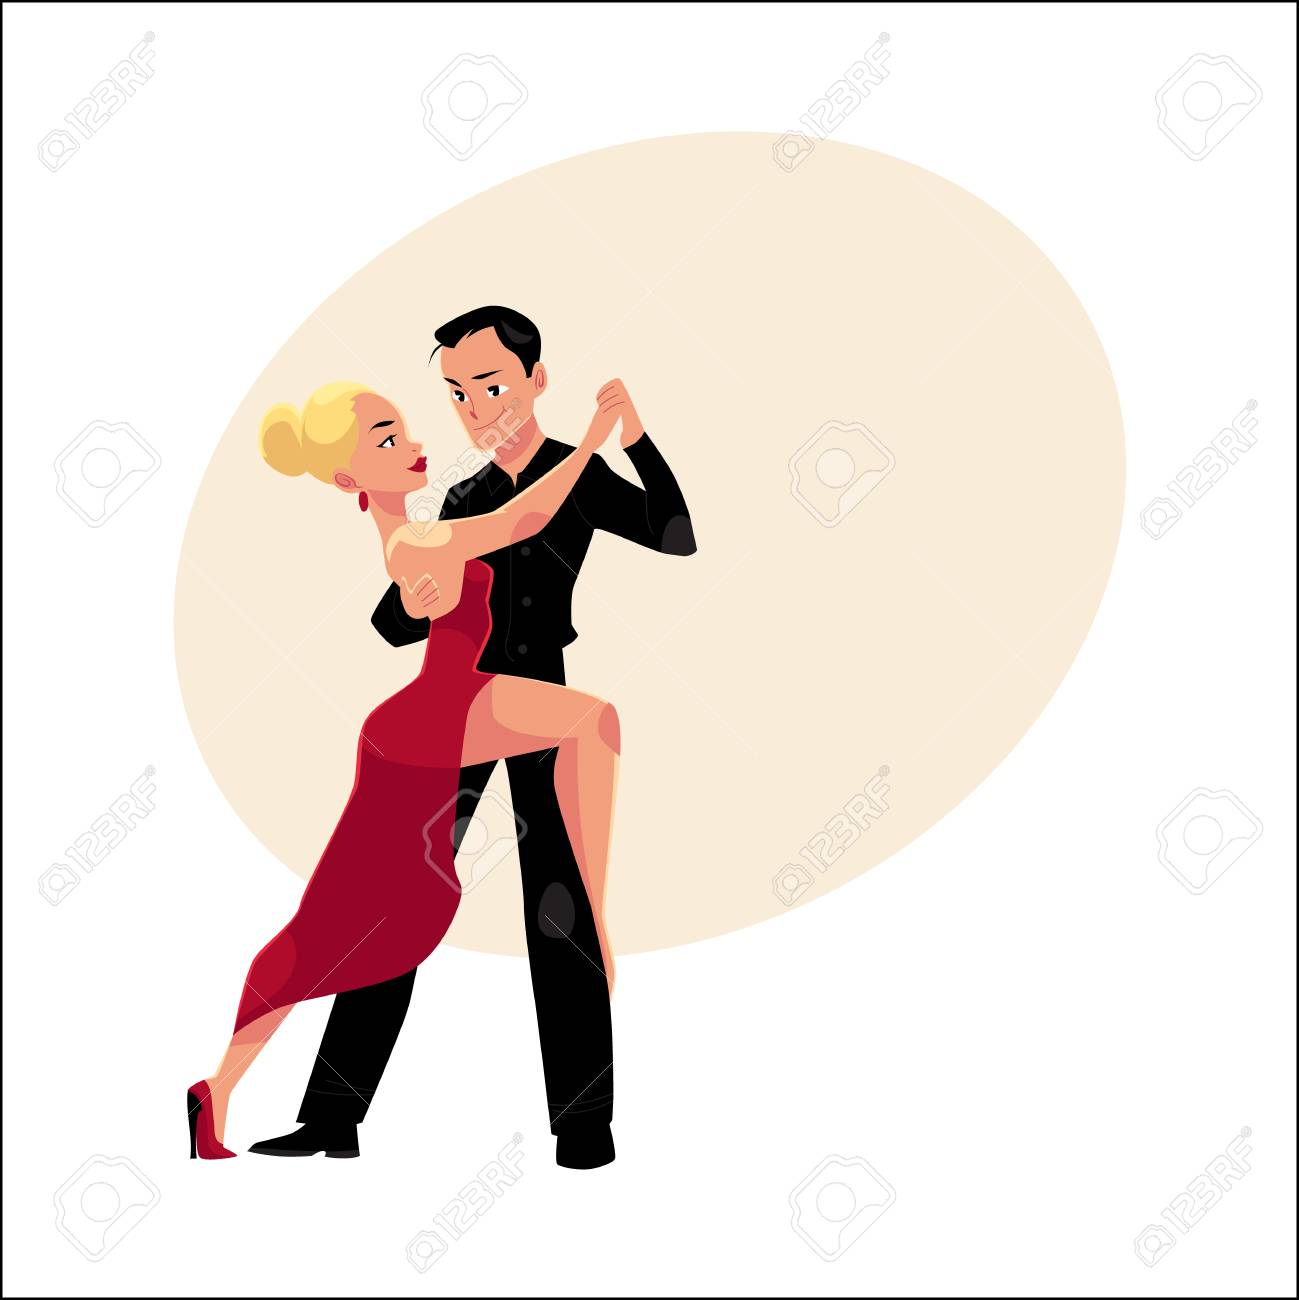 Busco pareja de baile tango [PUNIQRANDLINE-(au-dating-names.txt) 47